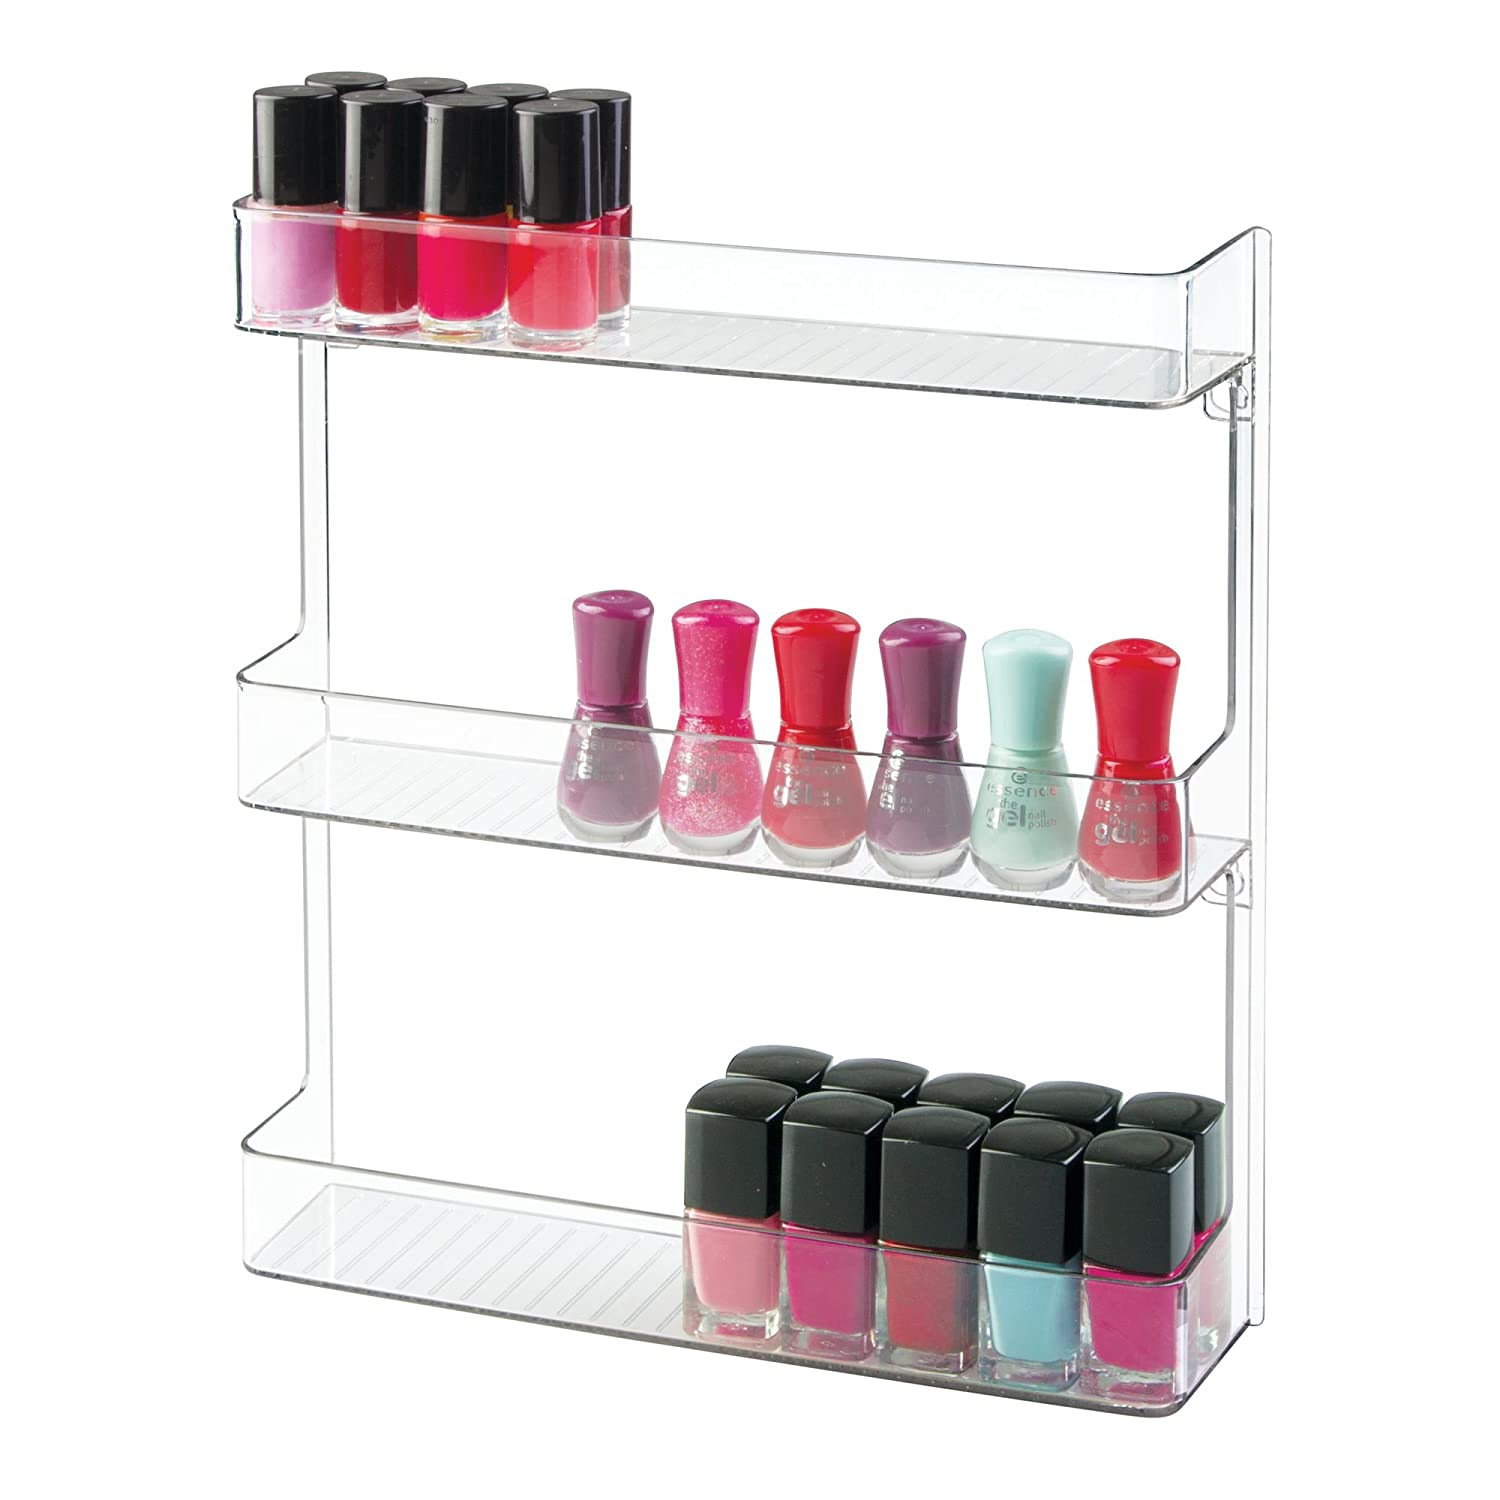 mDesign Wall-Mounted Nail Polish Shelf - Stylish Cosmetics Tray for The Bathroom - Nail Care Products Holder - Practical Cosmetics Storage with 3 Levels - Clear MetroDecor 8114MDC